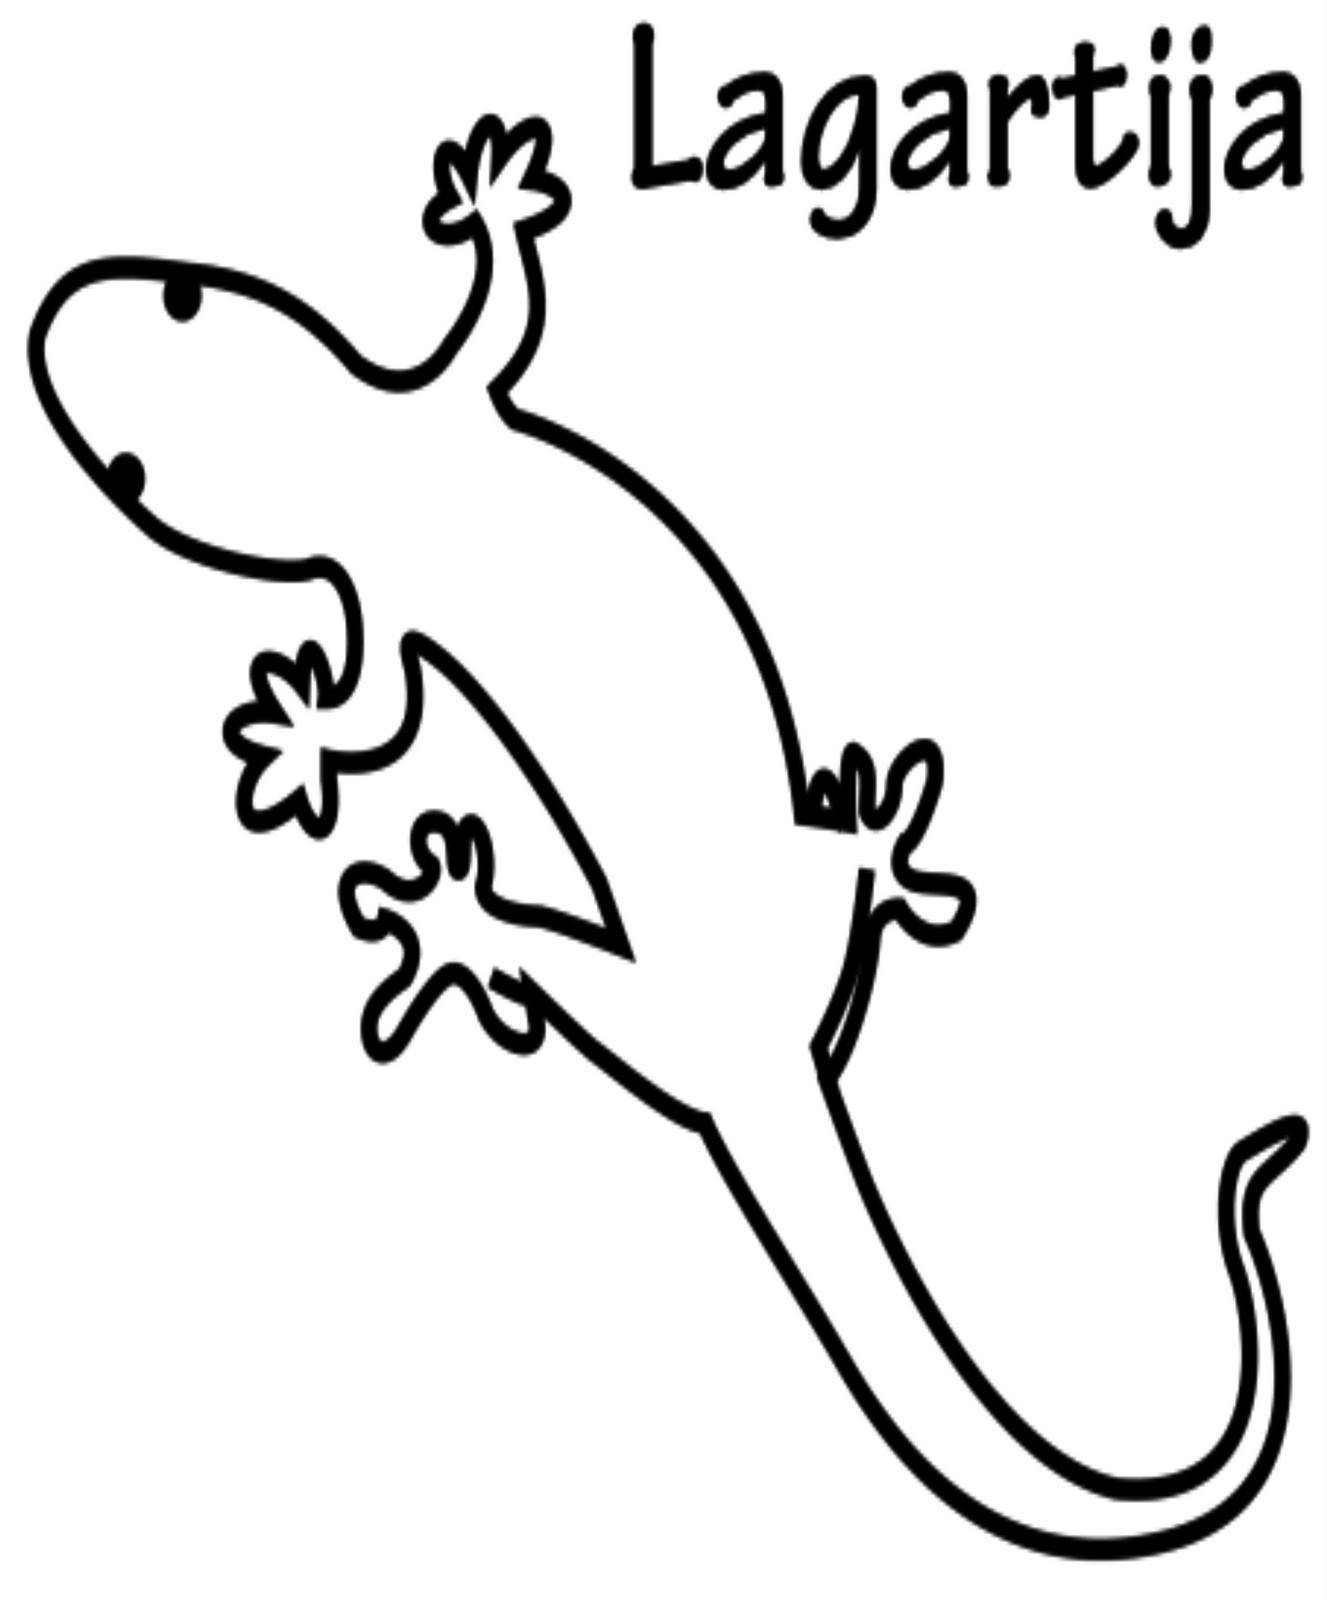 List Of Synonyms And Antonyms Of The Word Lagartija Dibujo